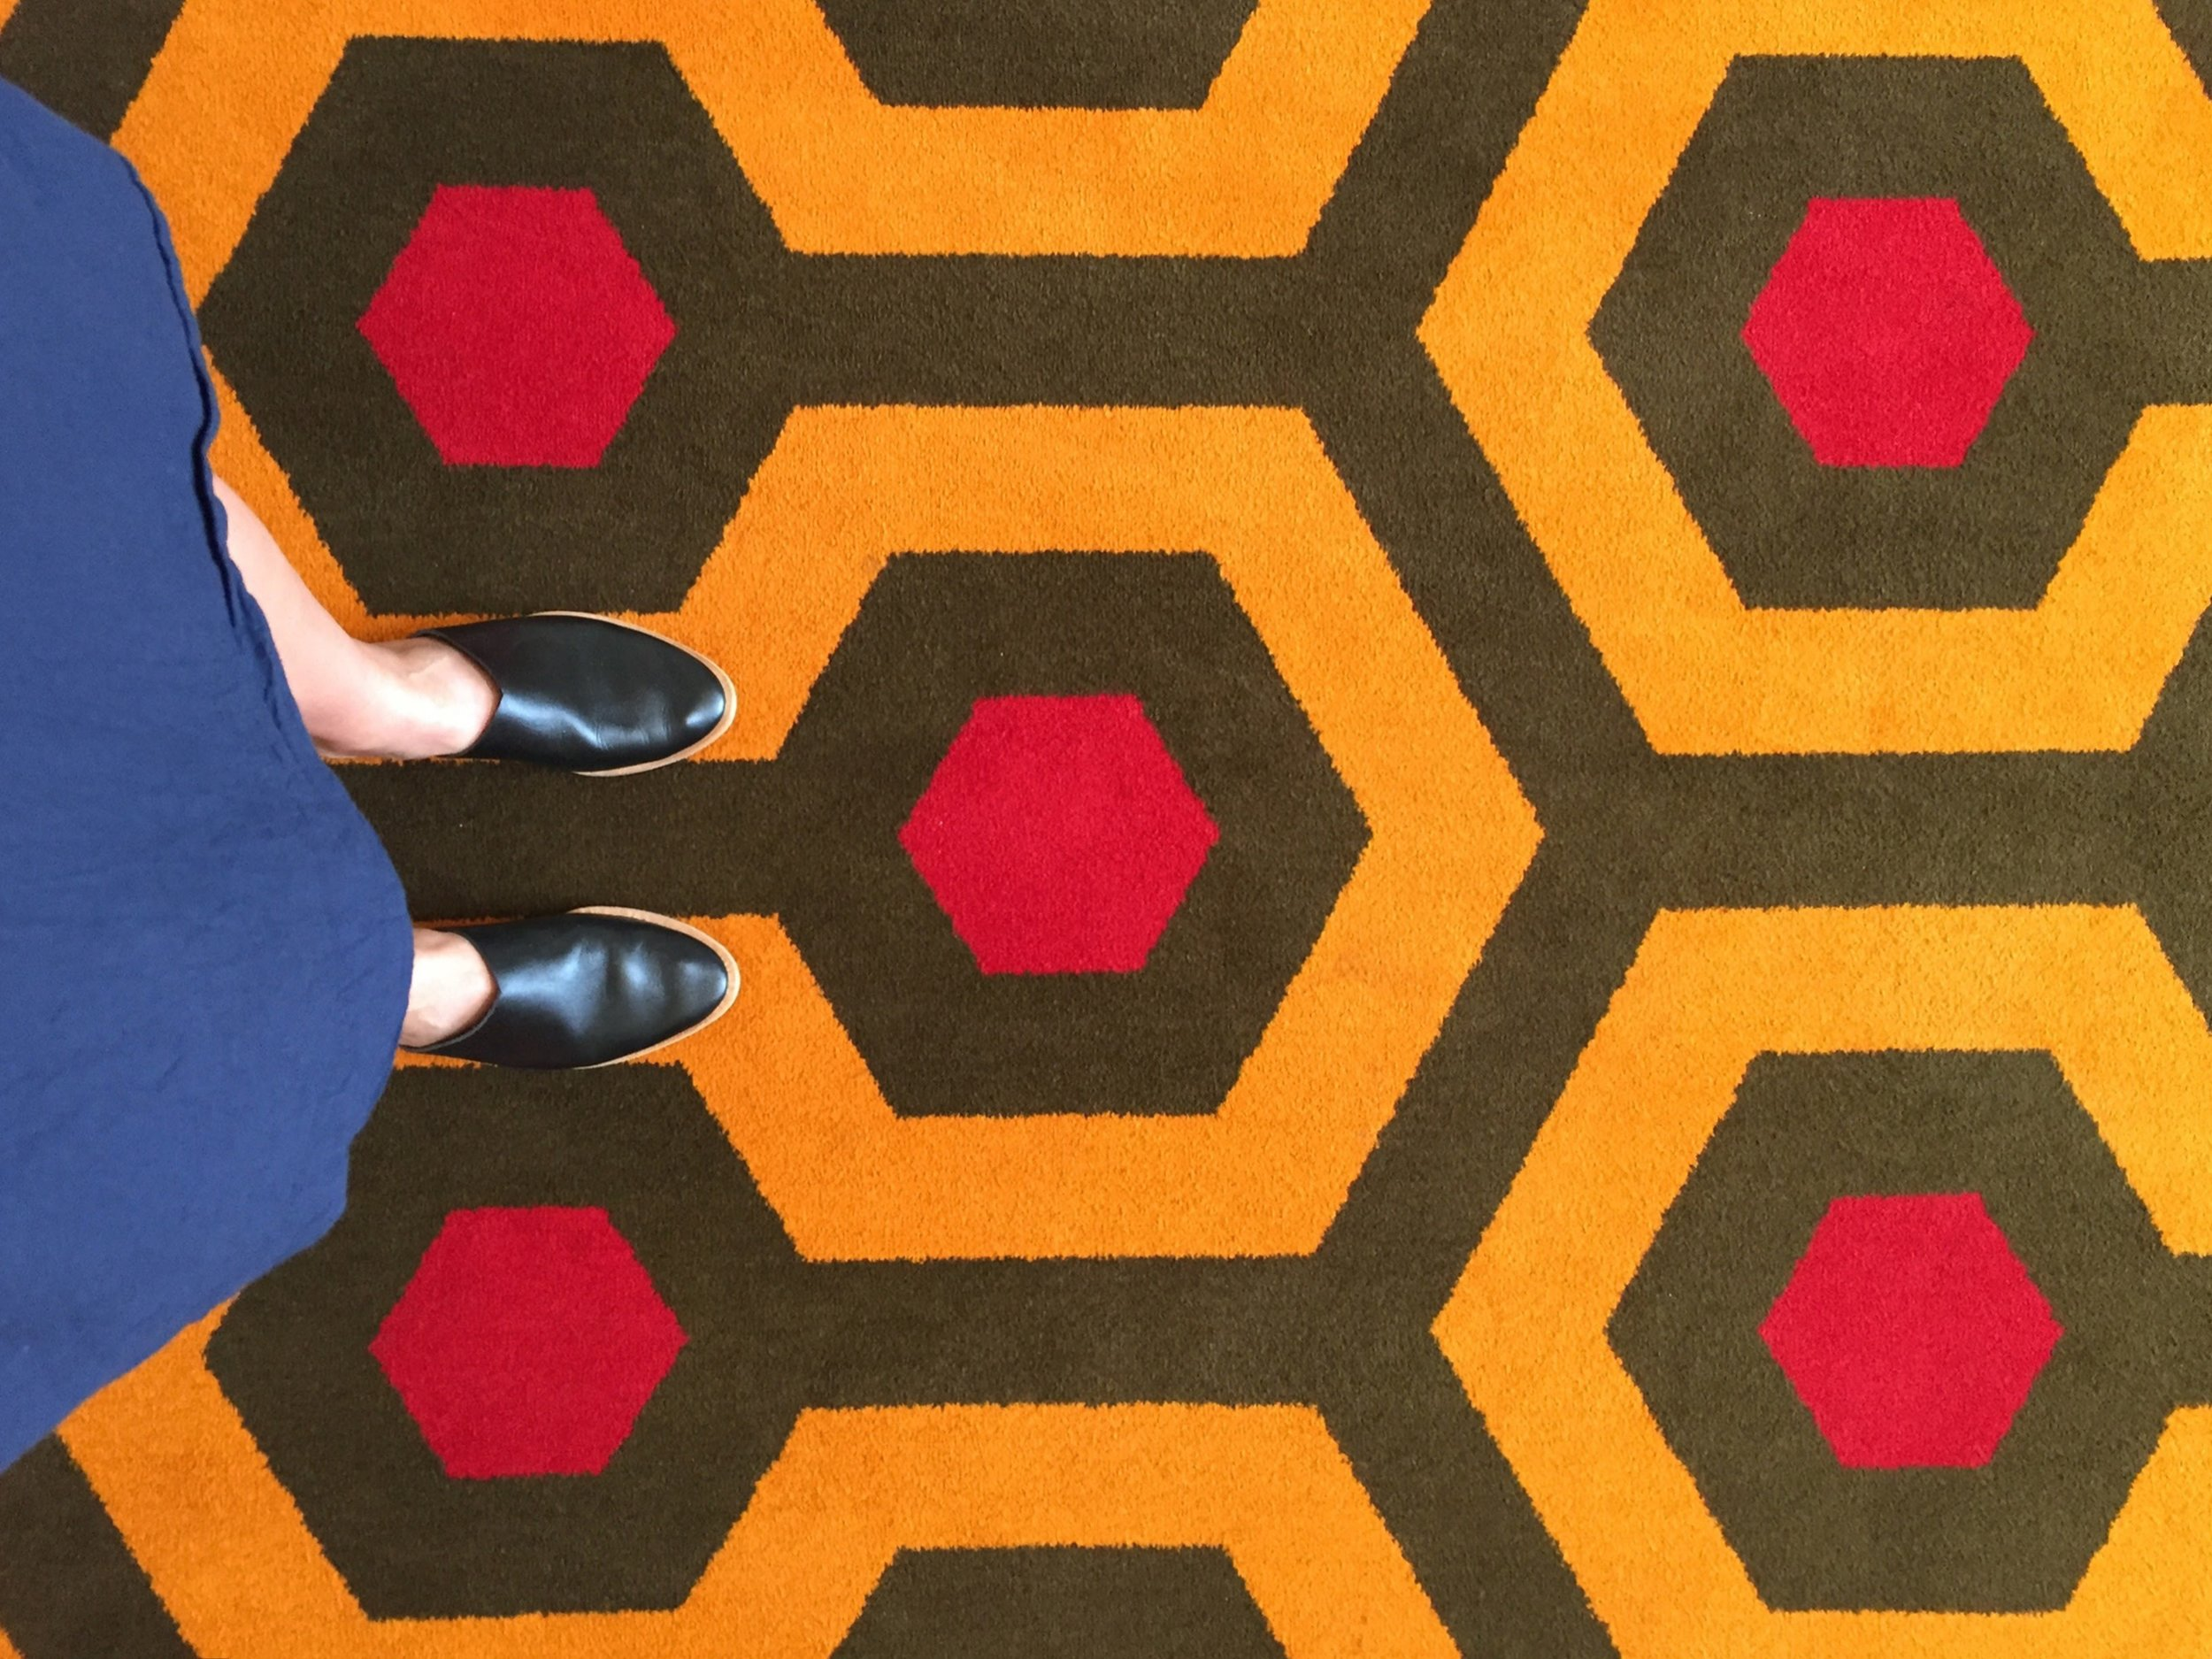 DAY FOUR  at this point, I'm admiring the hotel carpet inspired by Stanley Kubrick's film The Shining.